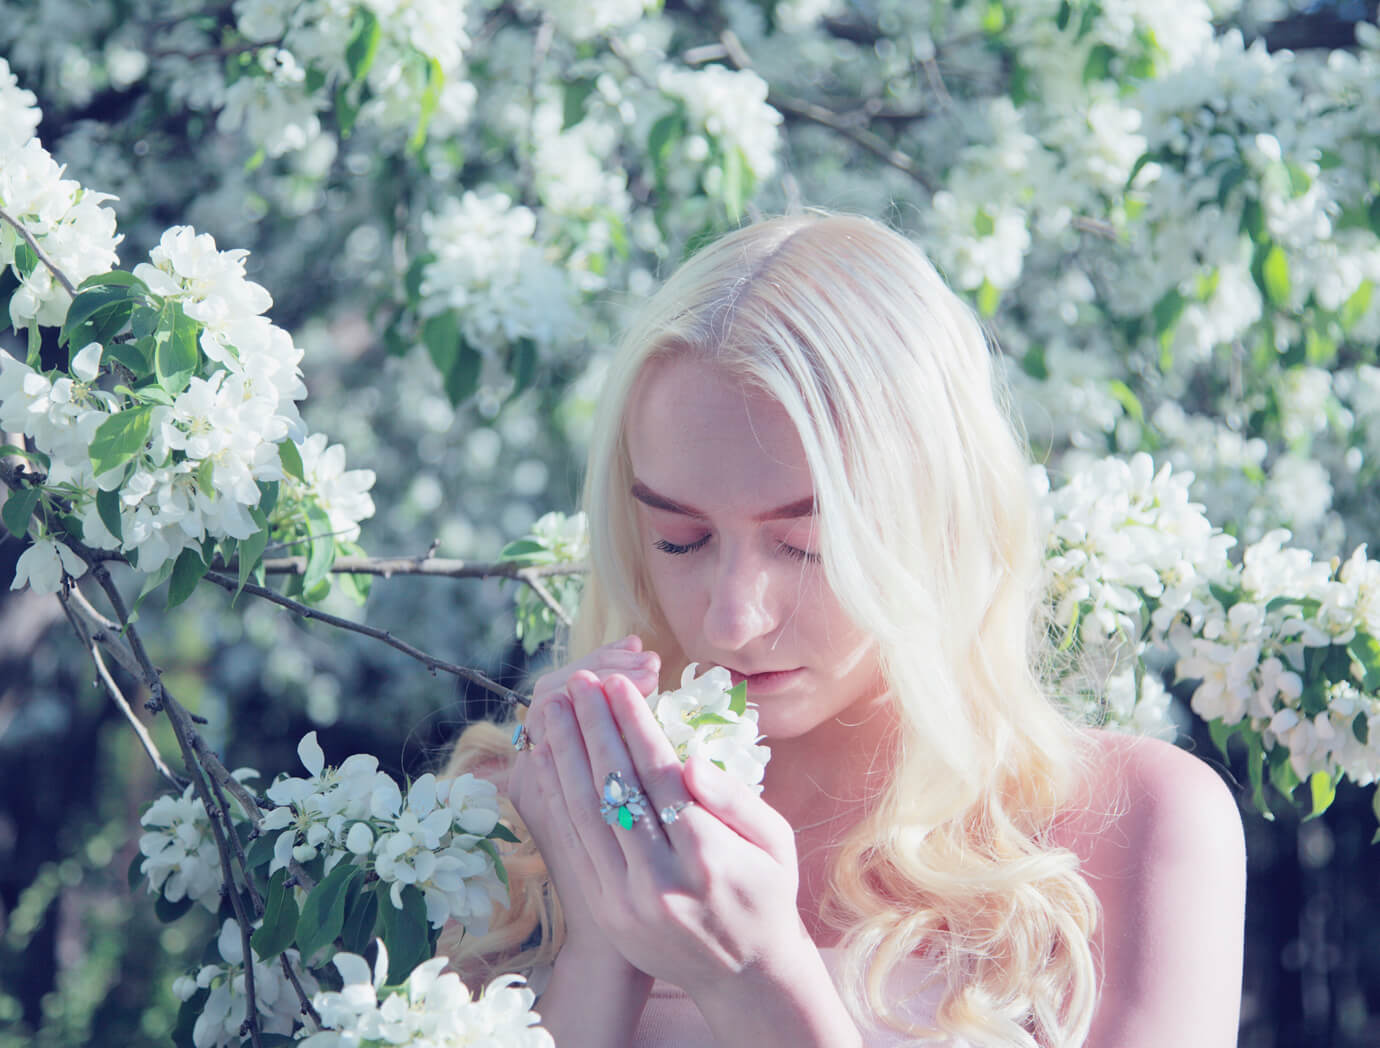 blonde woman smelling white flowers